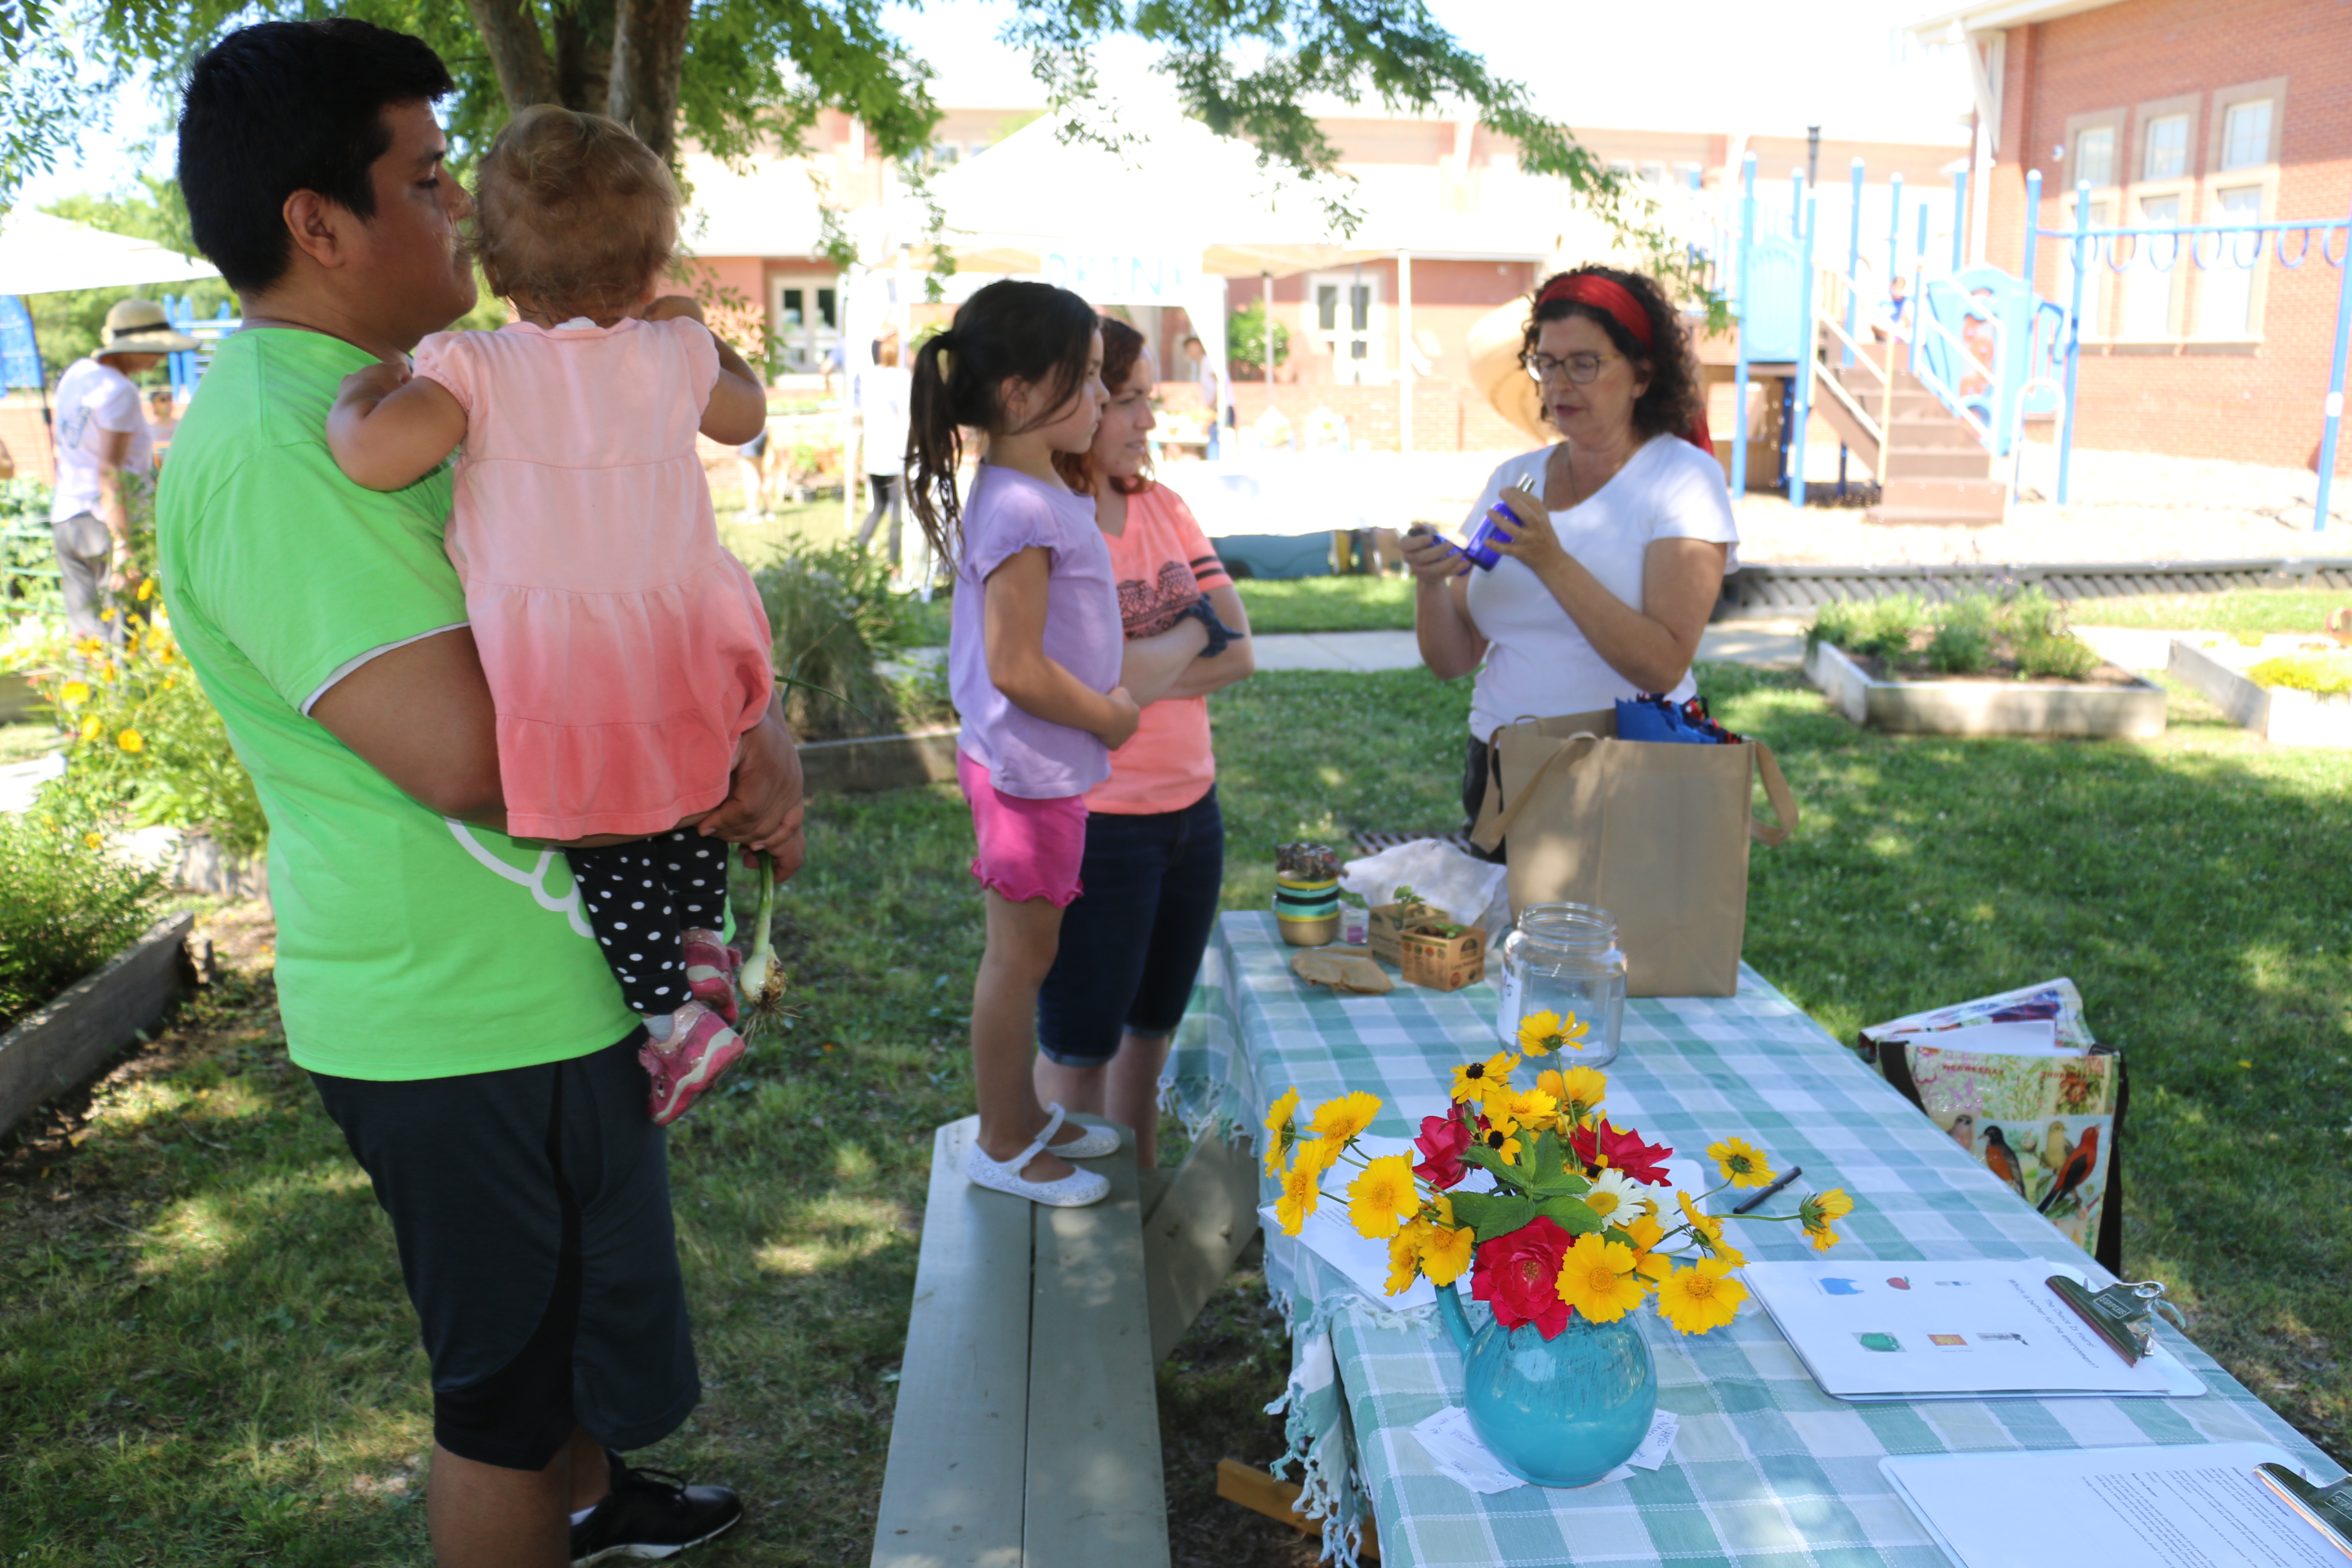 Volunteer Jacqueline Gowe demonstrates a craft for visitors to the garden.